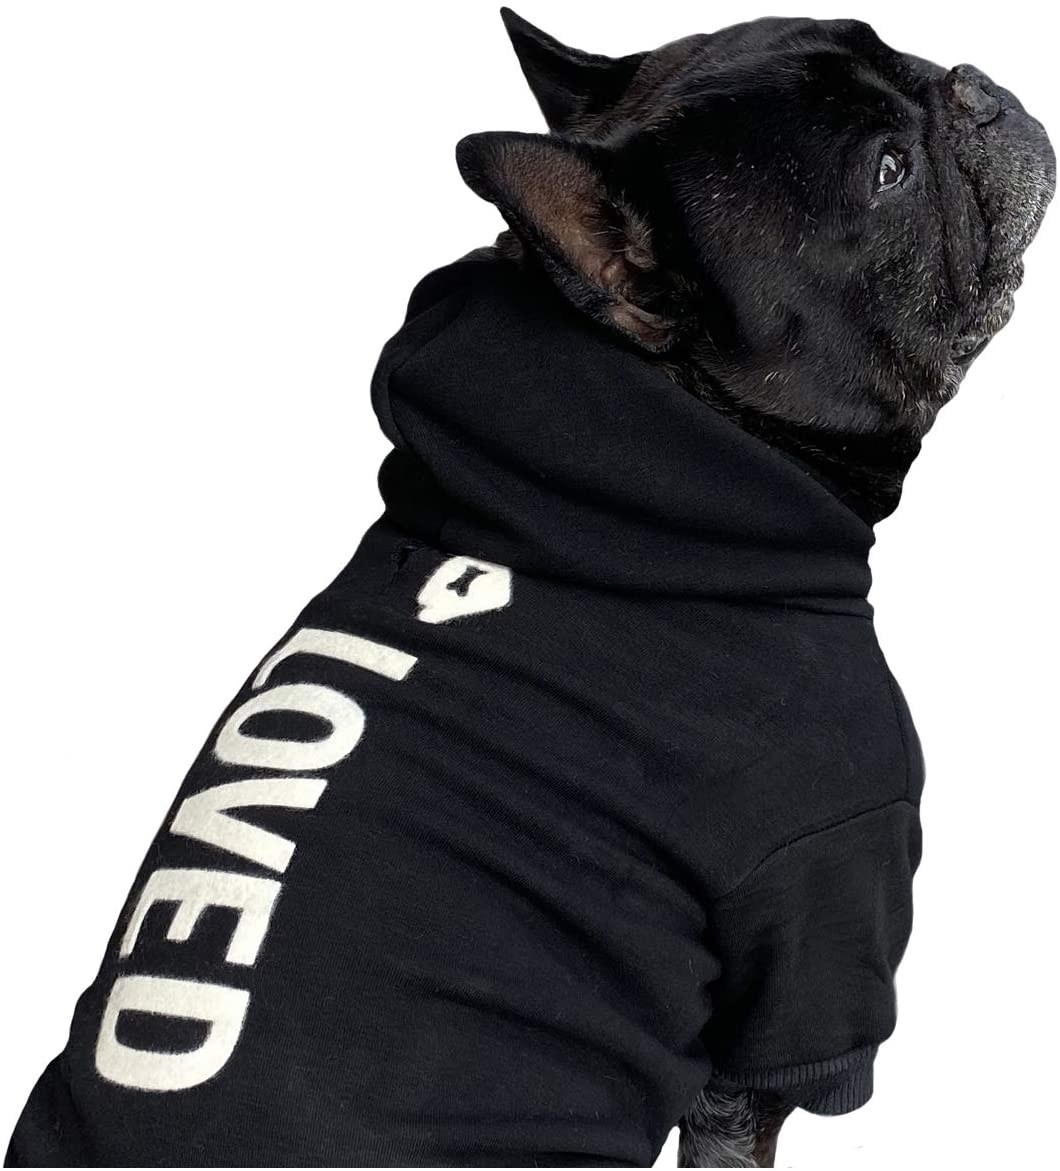 A dog in the black sweatshirt